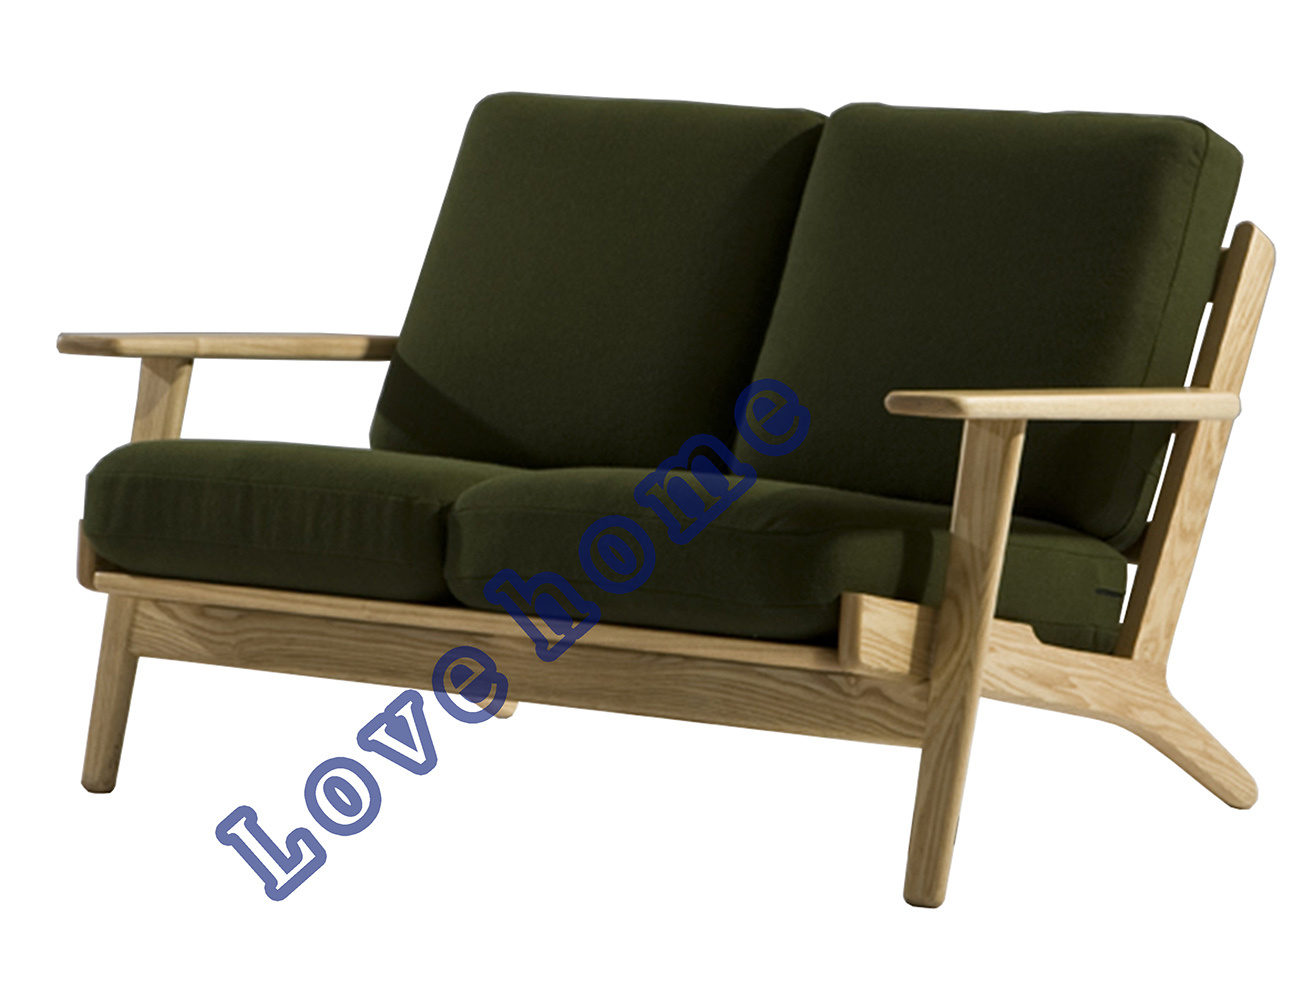 Hans Wegner Sofa Replica Hot Item Modern Coffee Leisure Hans Wegner Plank Wooden Two Seater Sofa